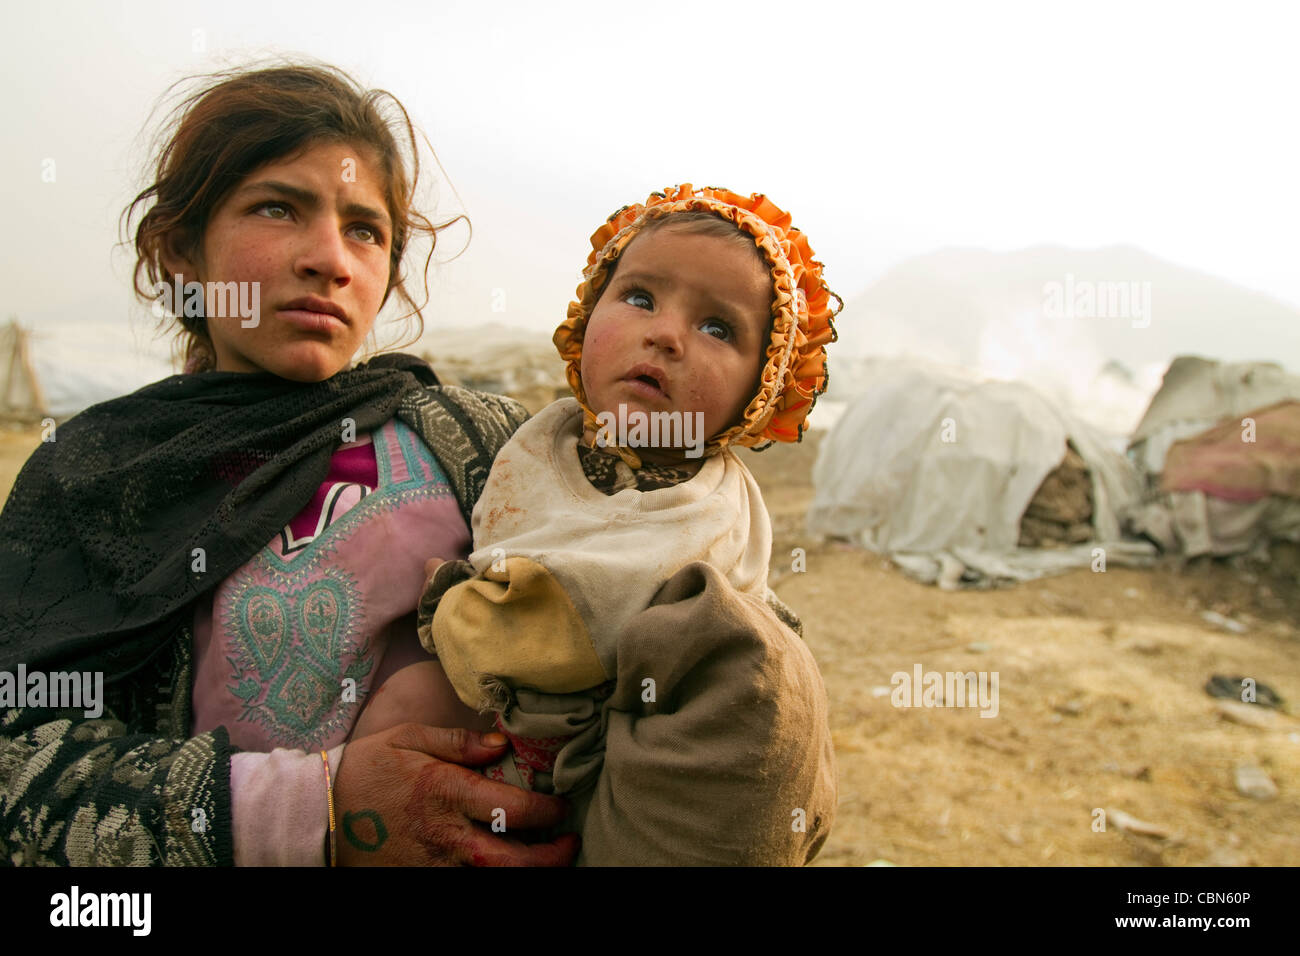 Portrait of young Afghan mother and baby living in poor conditions Kabul Afghanistan - Stock Image